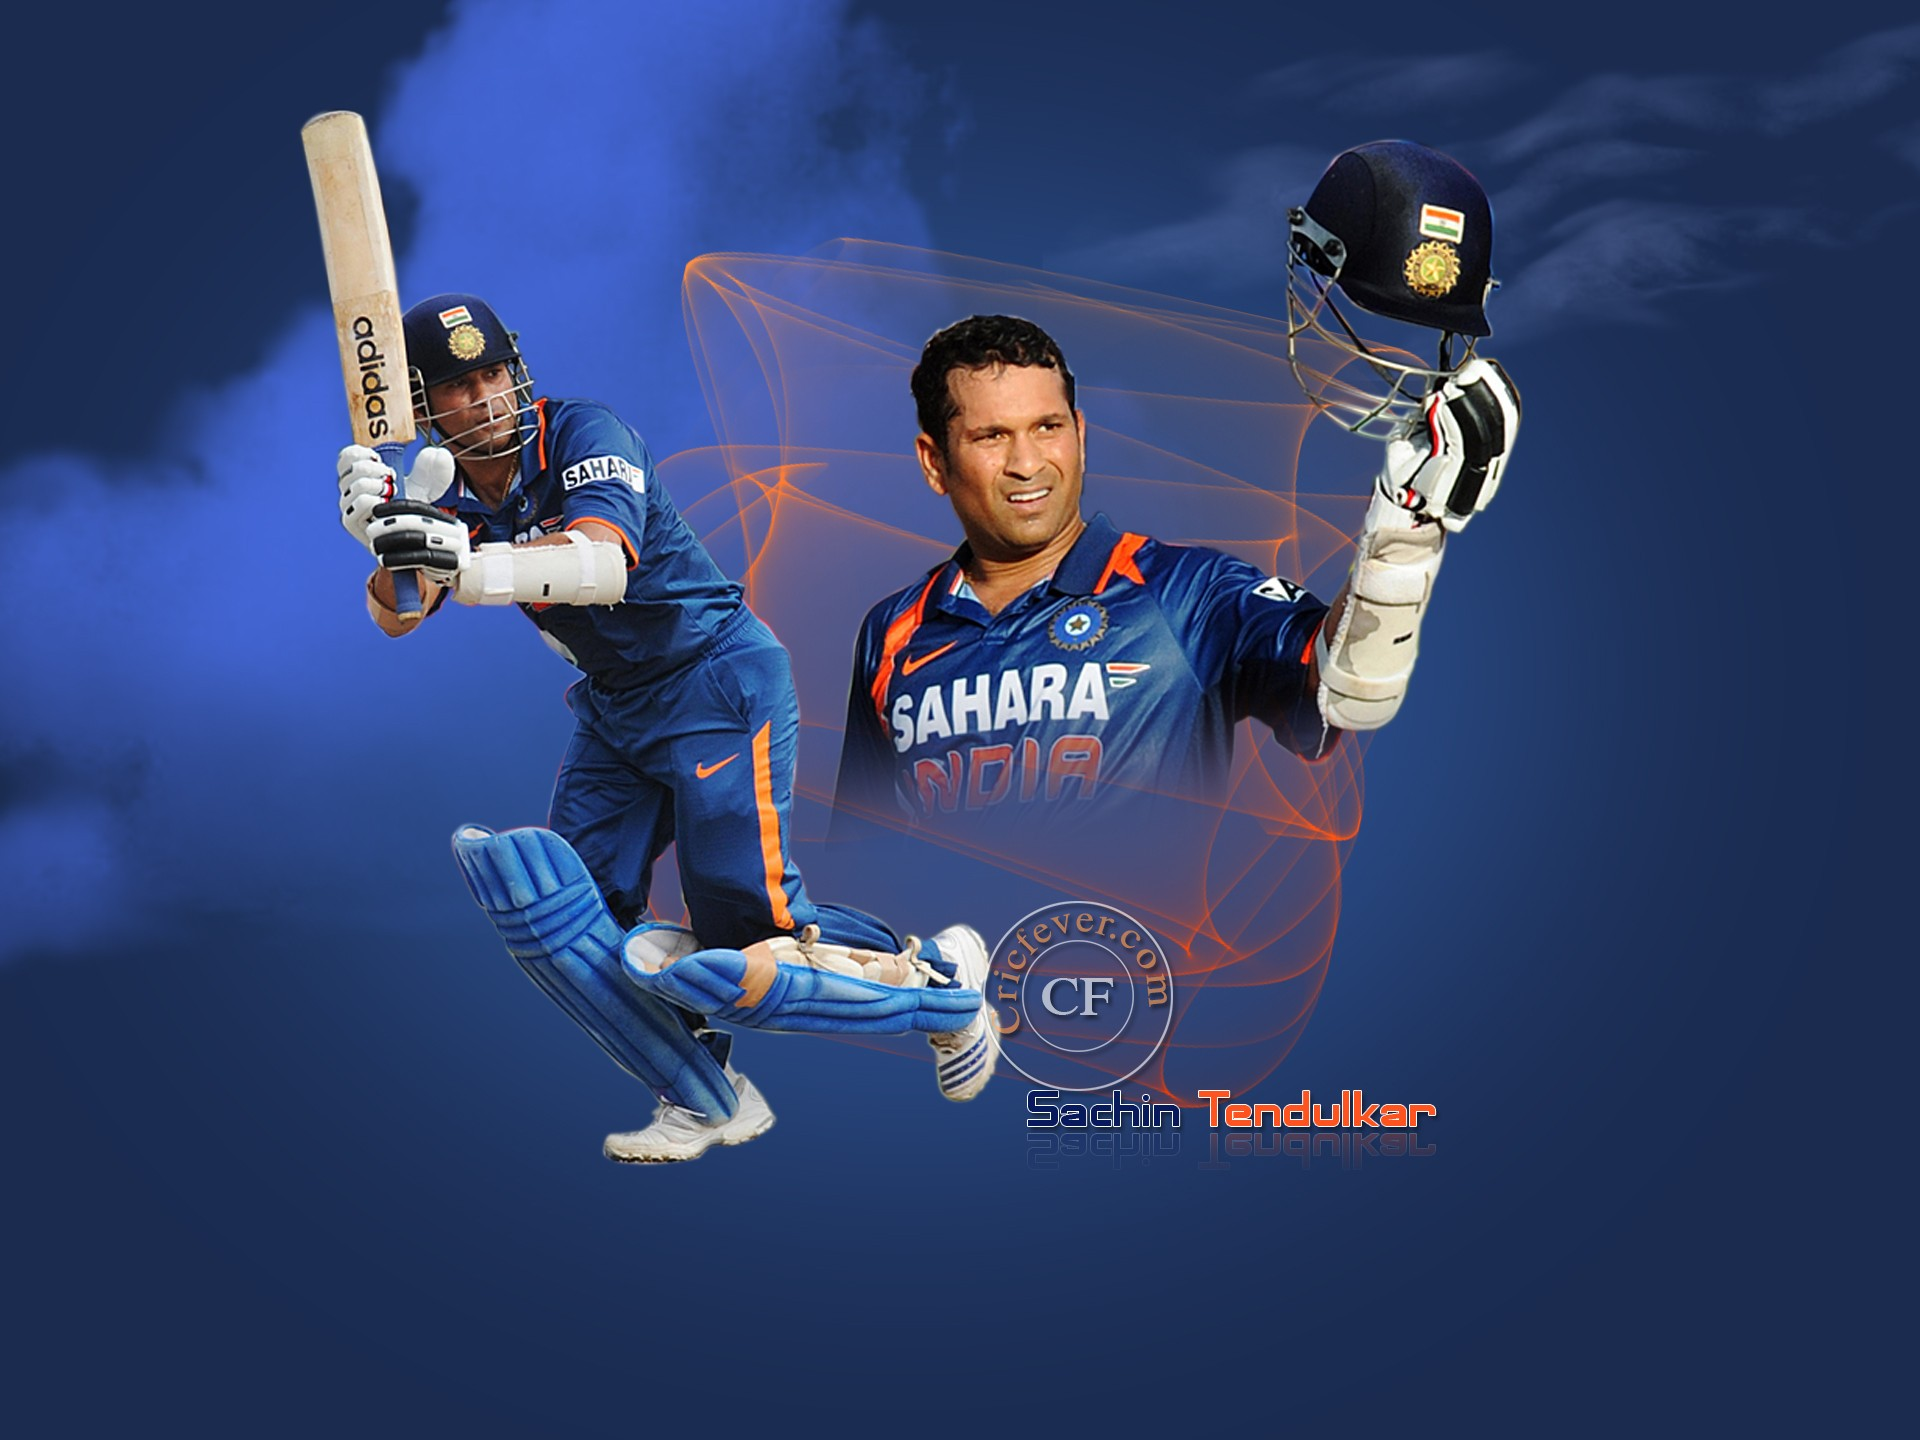 download master sachin tendulkar batting style pose mobile hd free background images